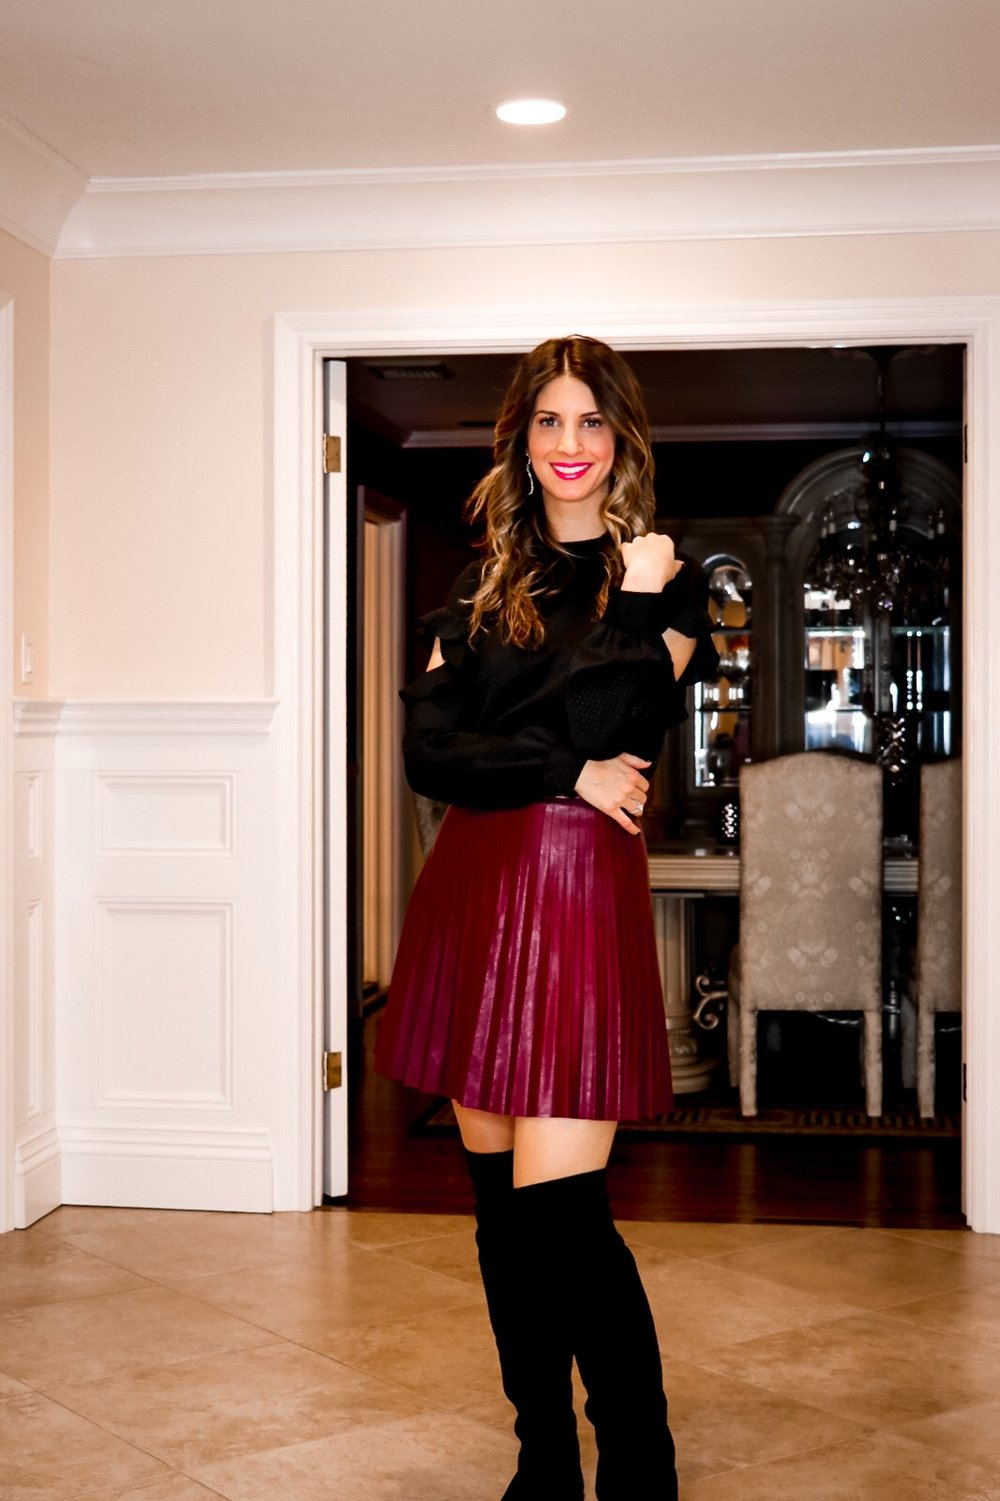 burgandy leather skirt and otk boots.JPG